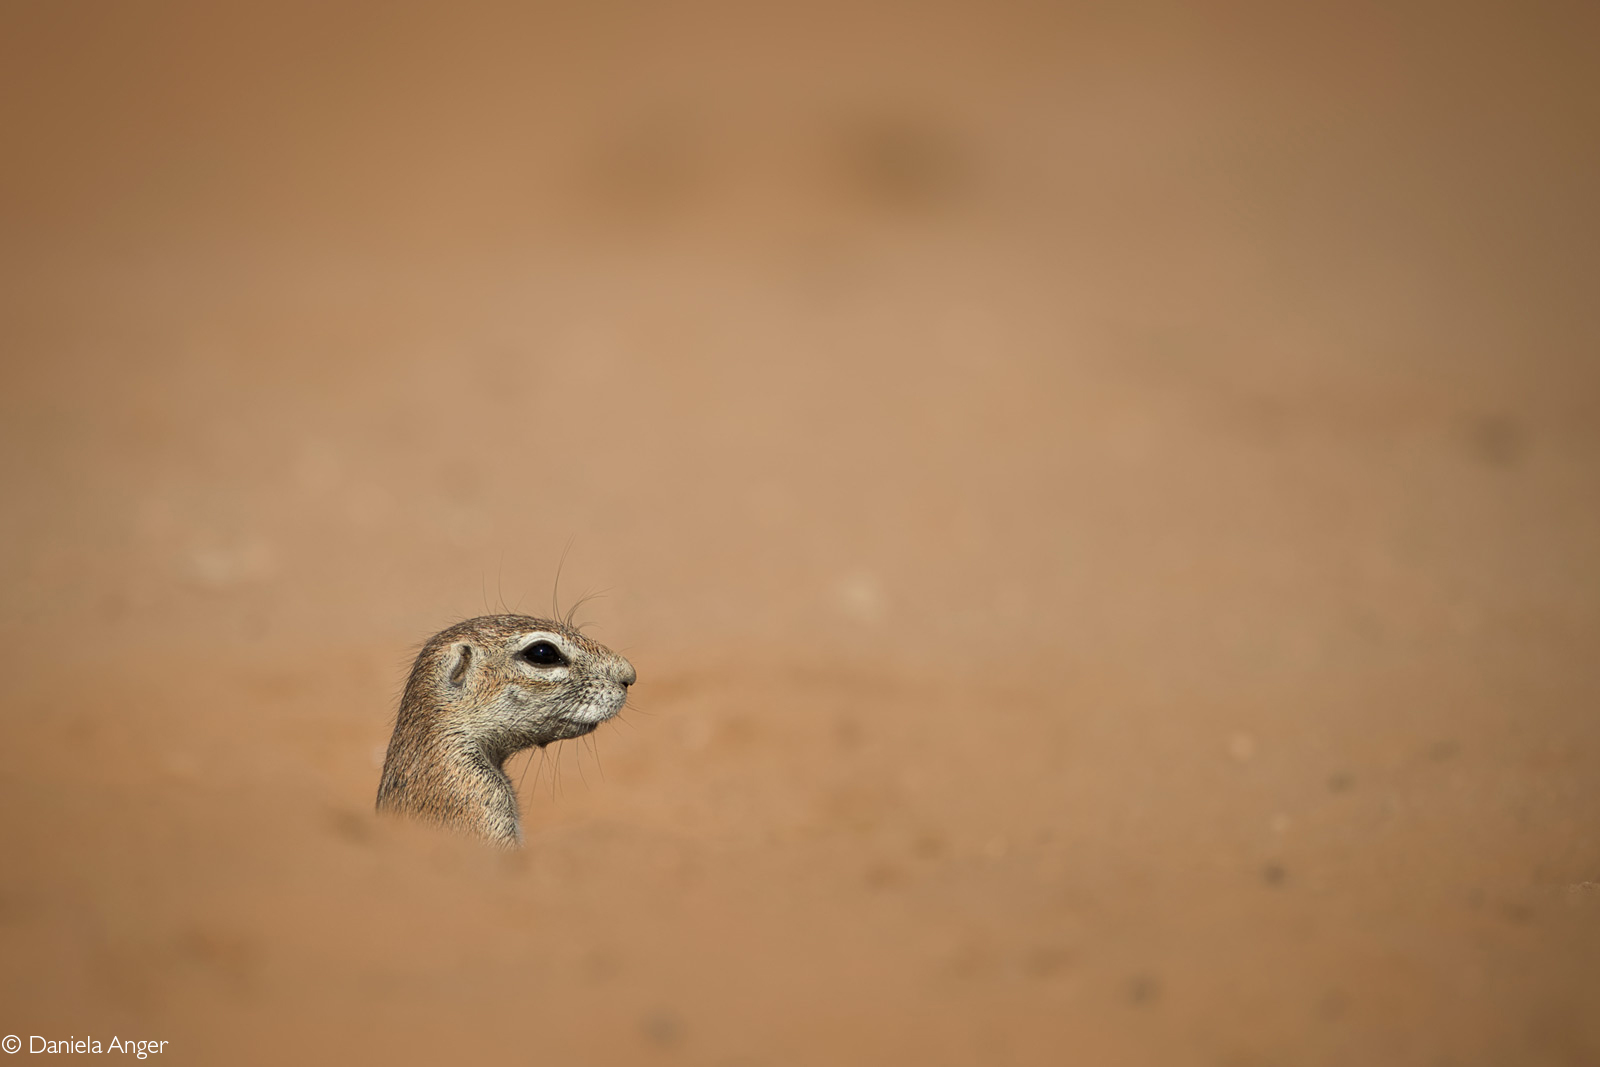 Cape ground squirrel peeking out of its burrow. Kgalagadi Transfrontier Park, South Africa © Daniela Anger